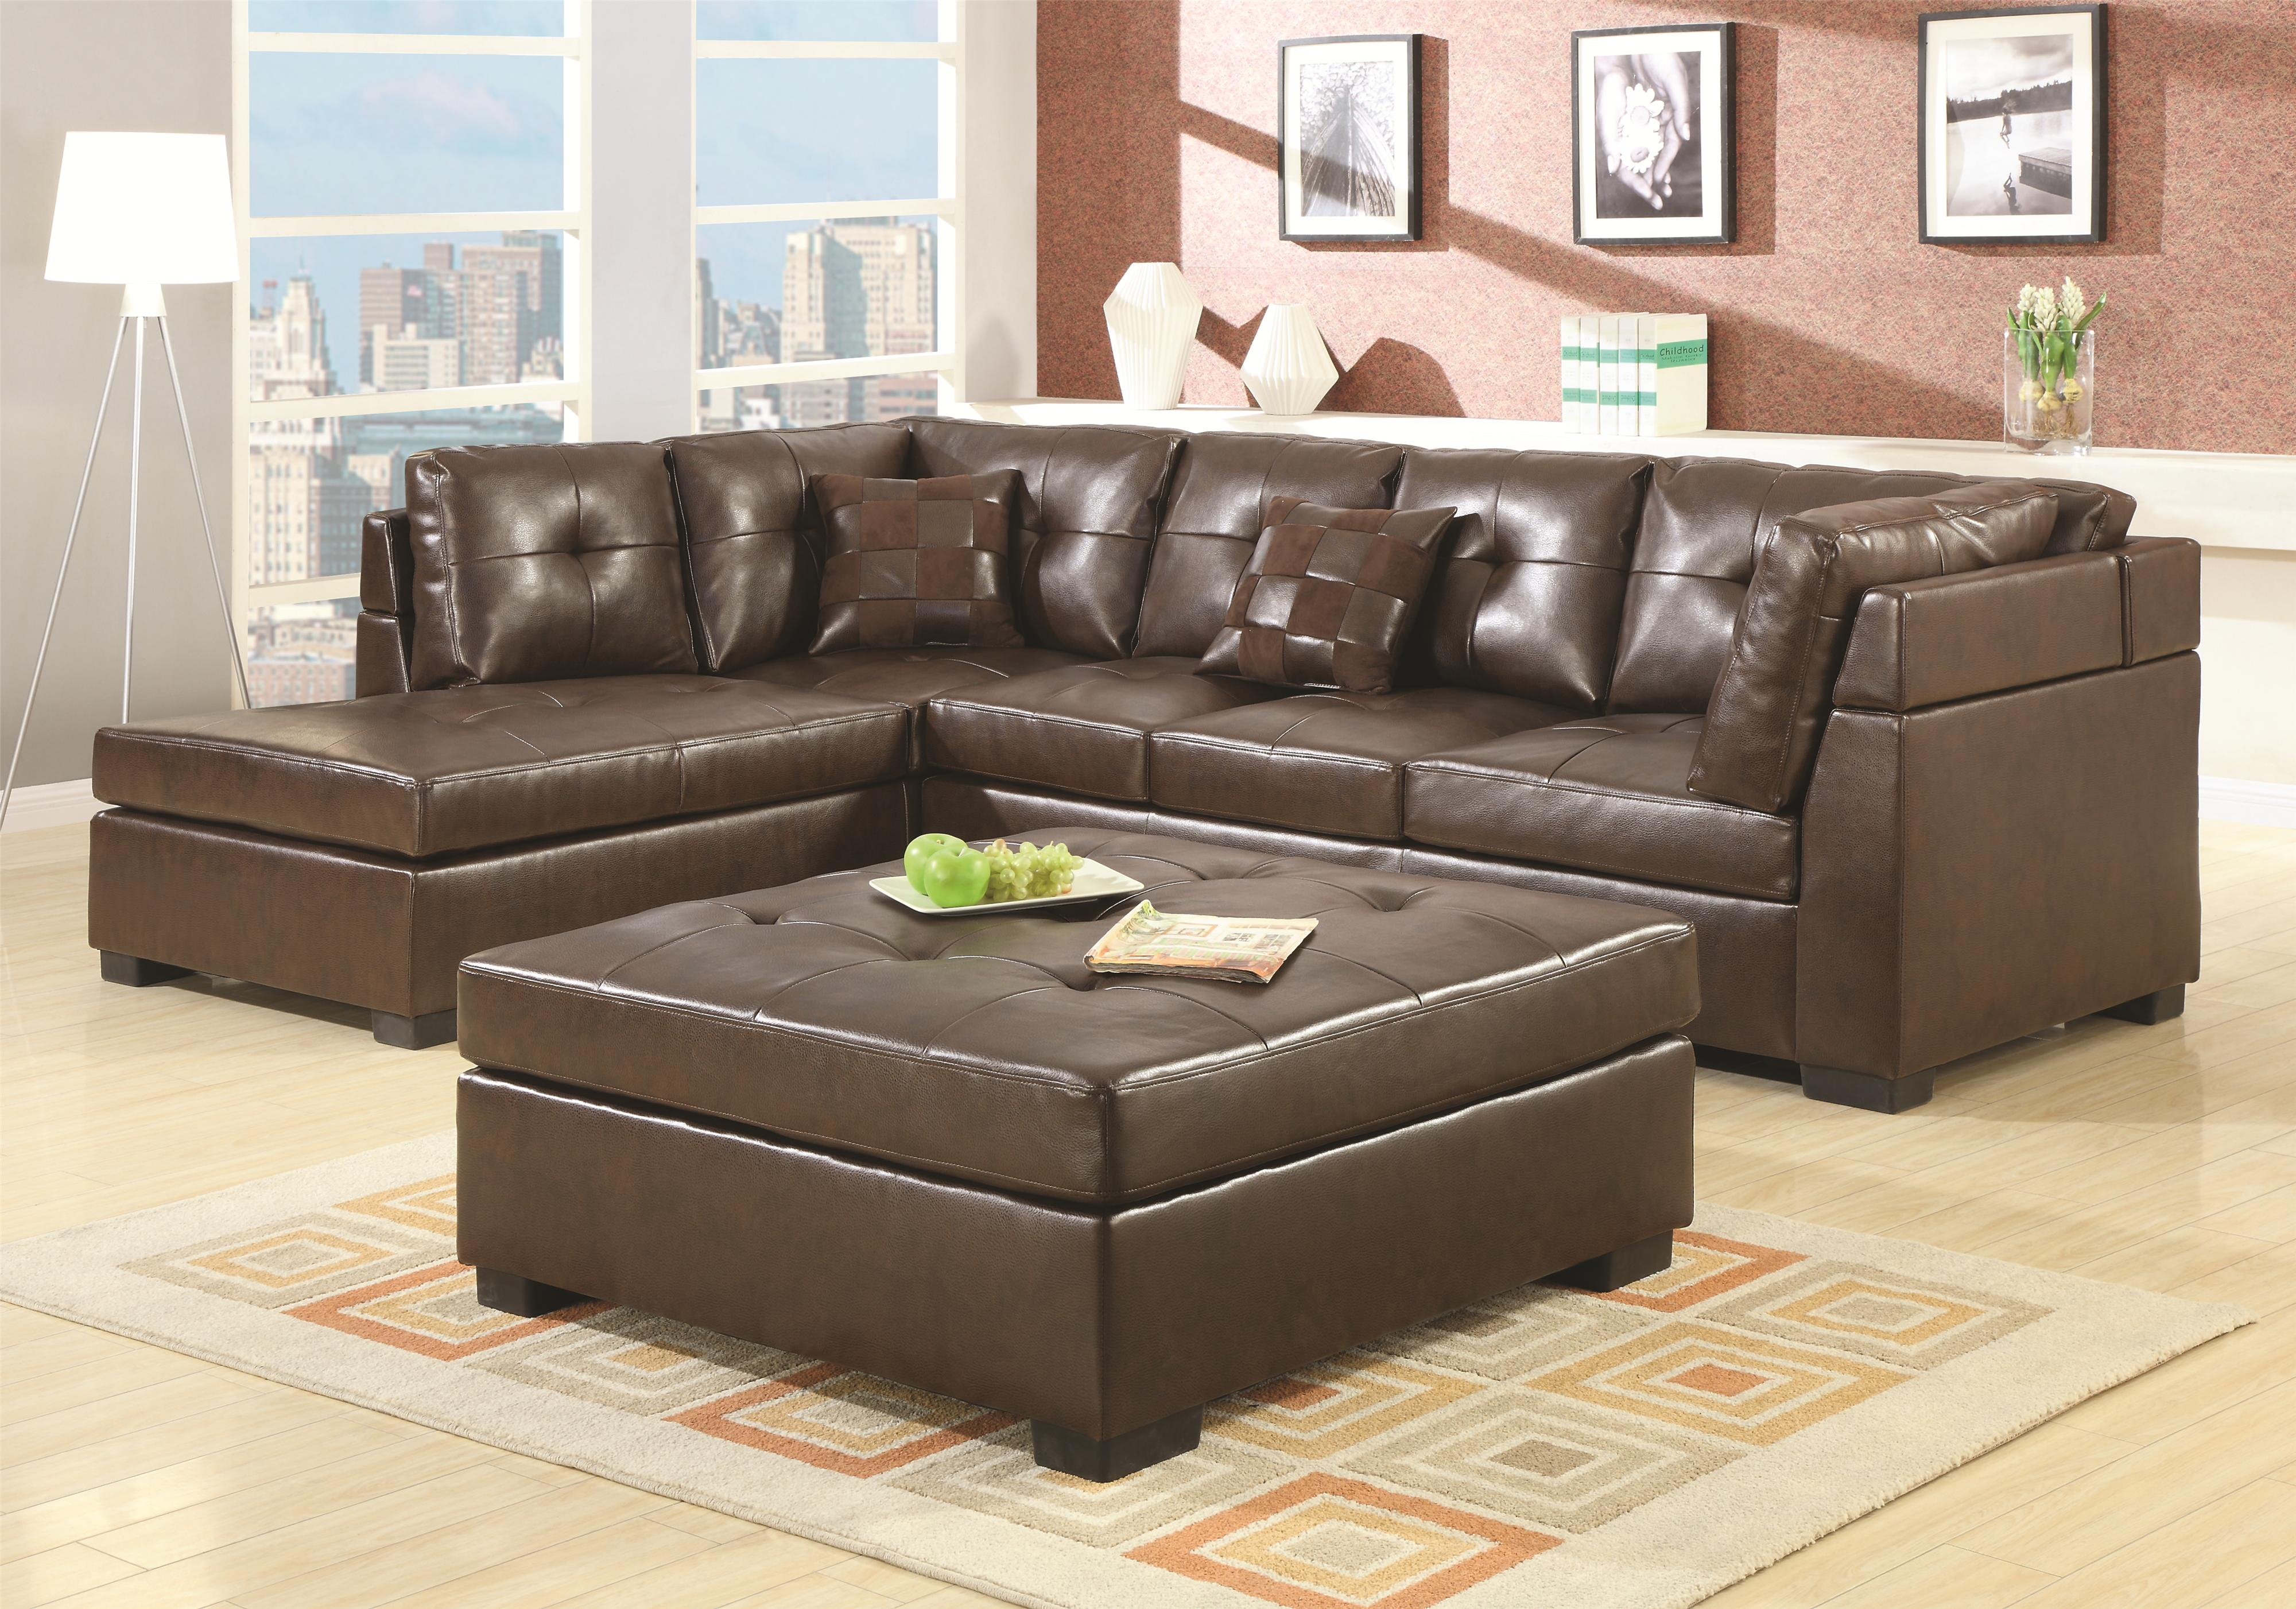 Darie Leather Sectional Sofa With Left Side Chaise Fine Furniture At Del Sol Furniture within Whole Living Room Sets